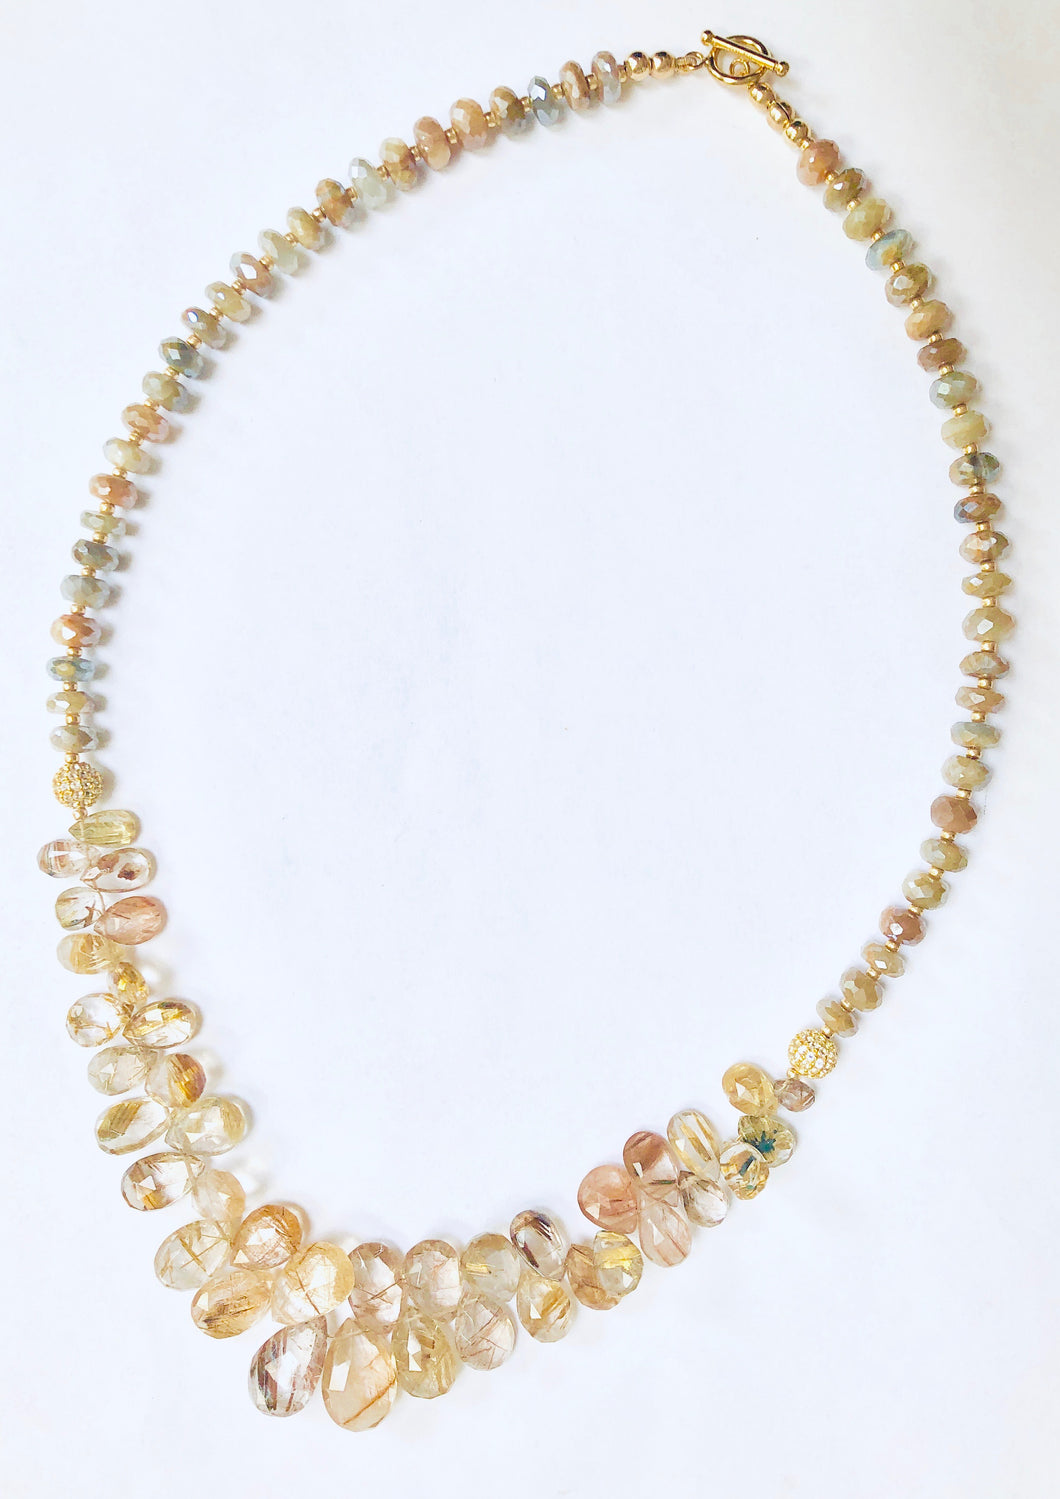 Golden Moonstone and Golden Reticulated Quartz Necklace